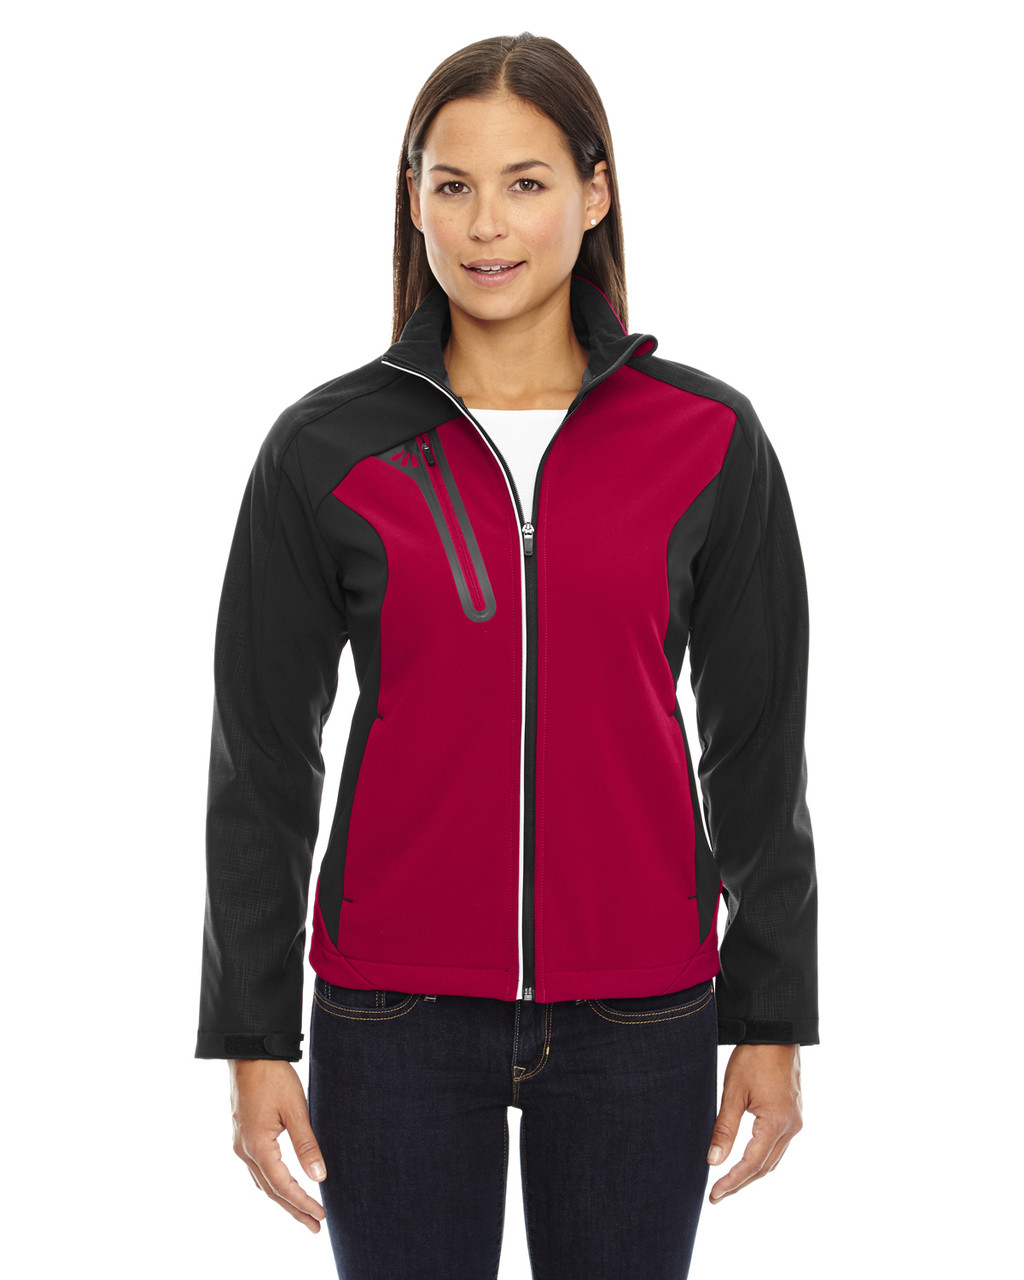 Classic Red - 78176 North End Terrain Colourblock Soft Shell Jacket with Embossed Print | Blankclothing.ca